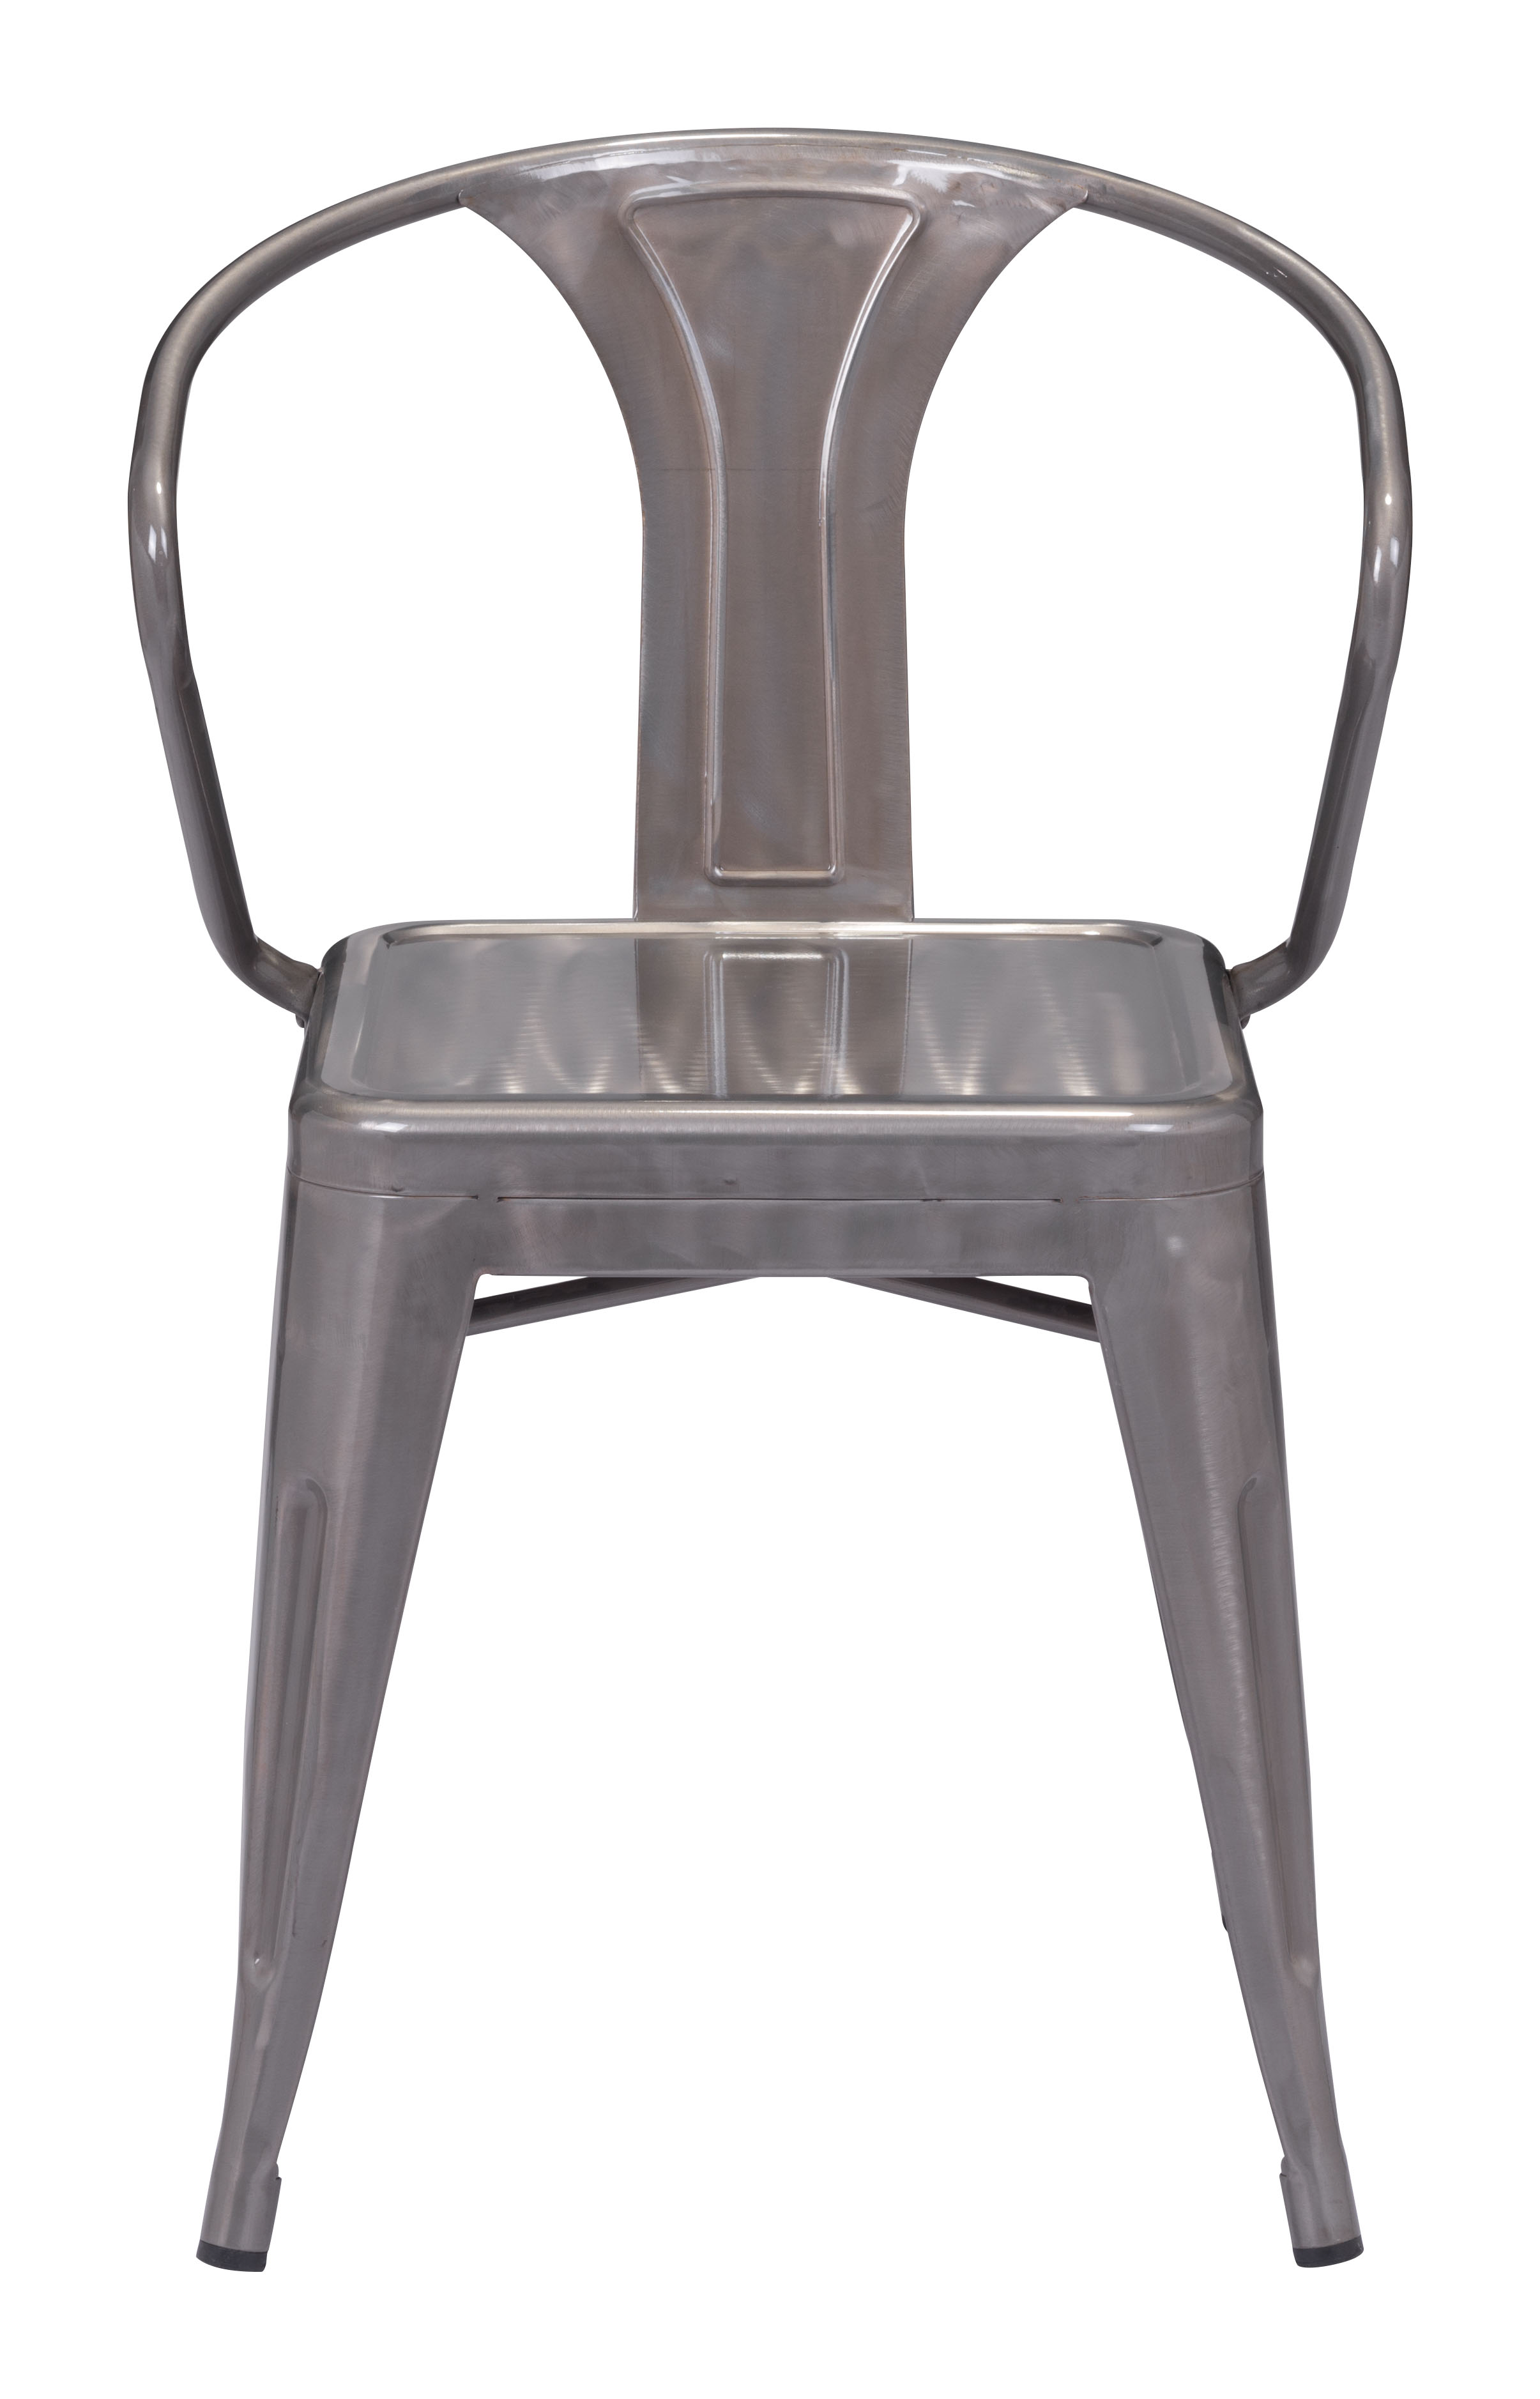 zuo-108145-helix-dining-chair.jpg